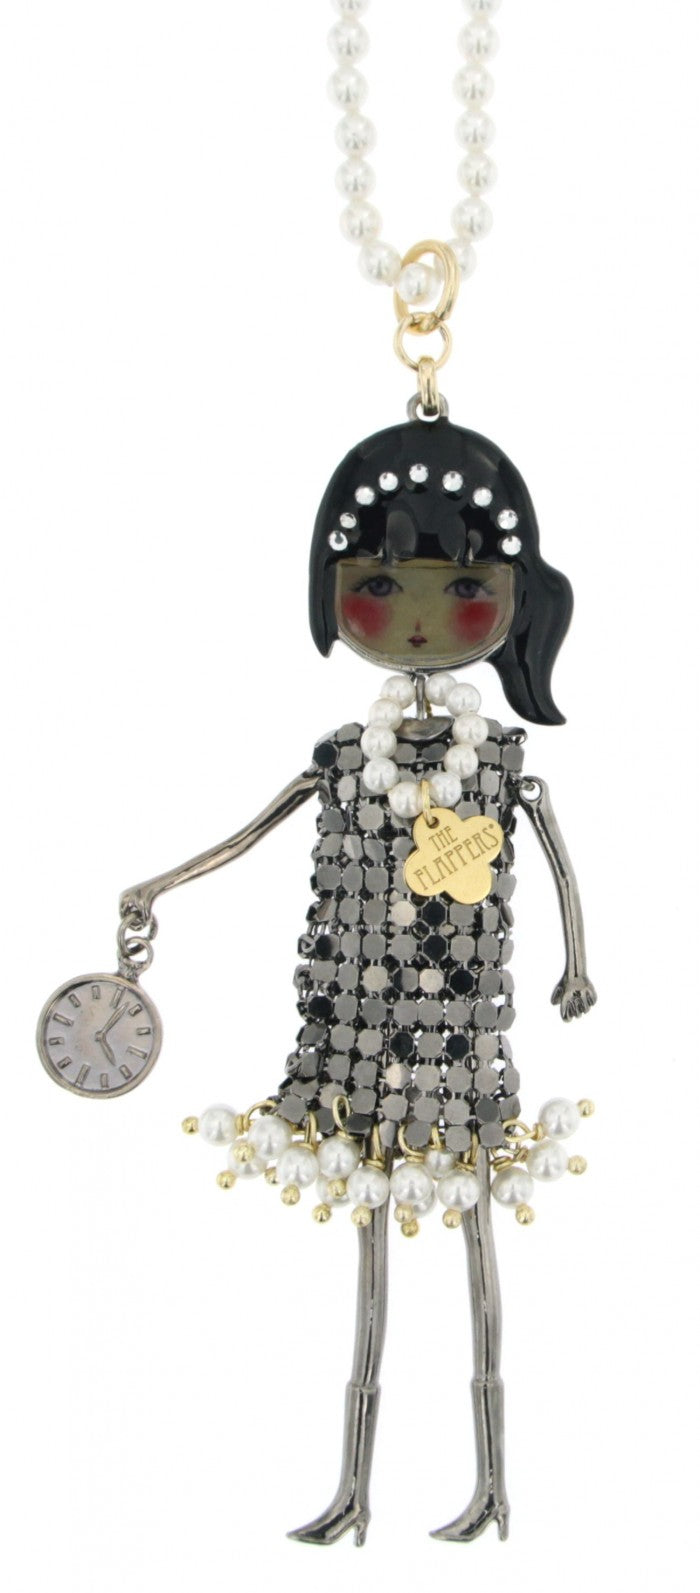 Le Carose pearl necklace with doll flappers